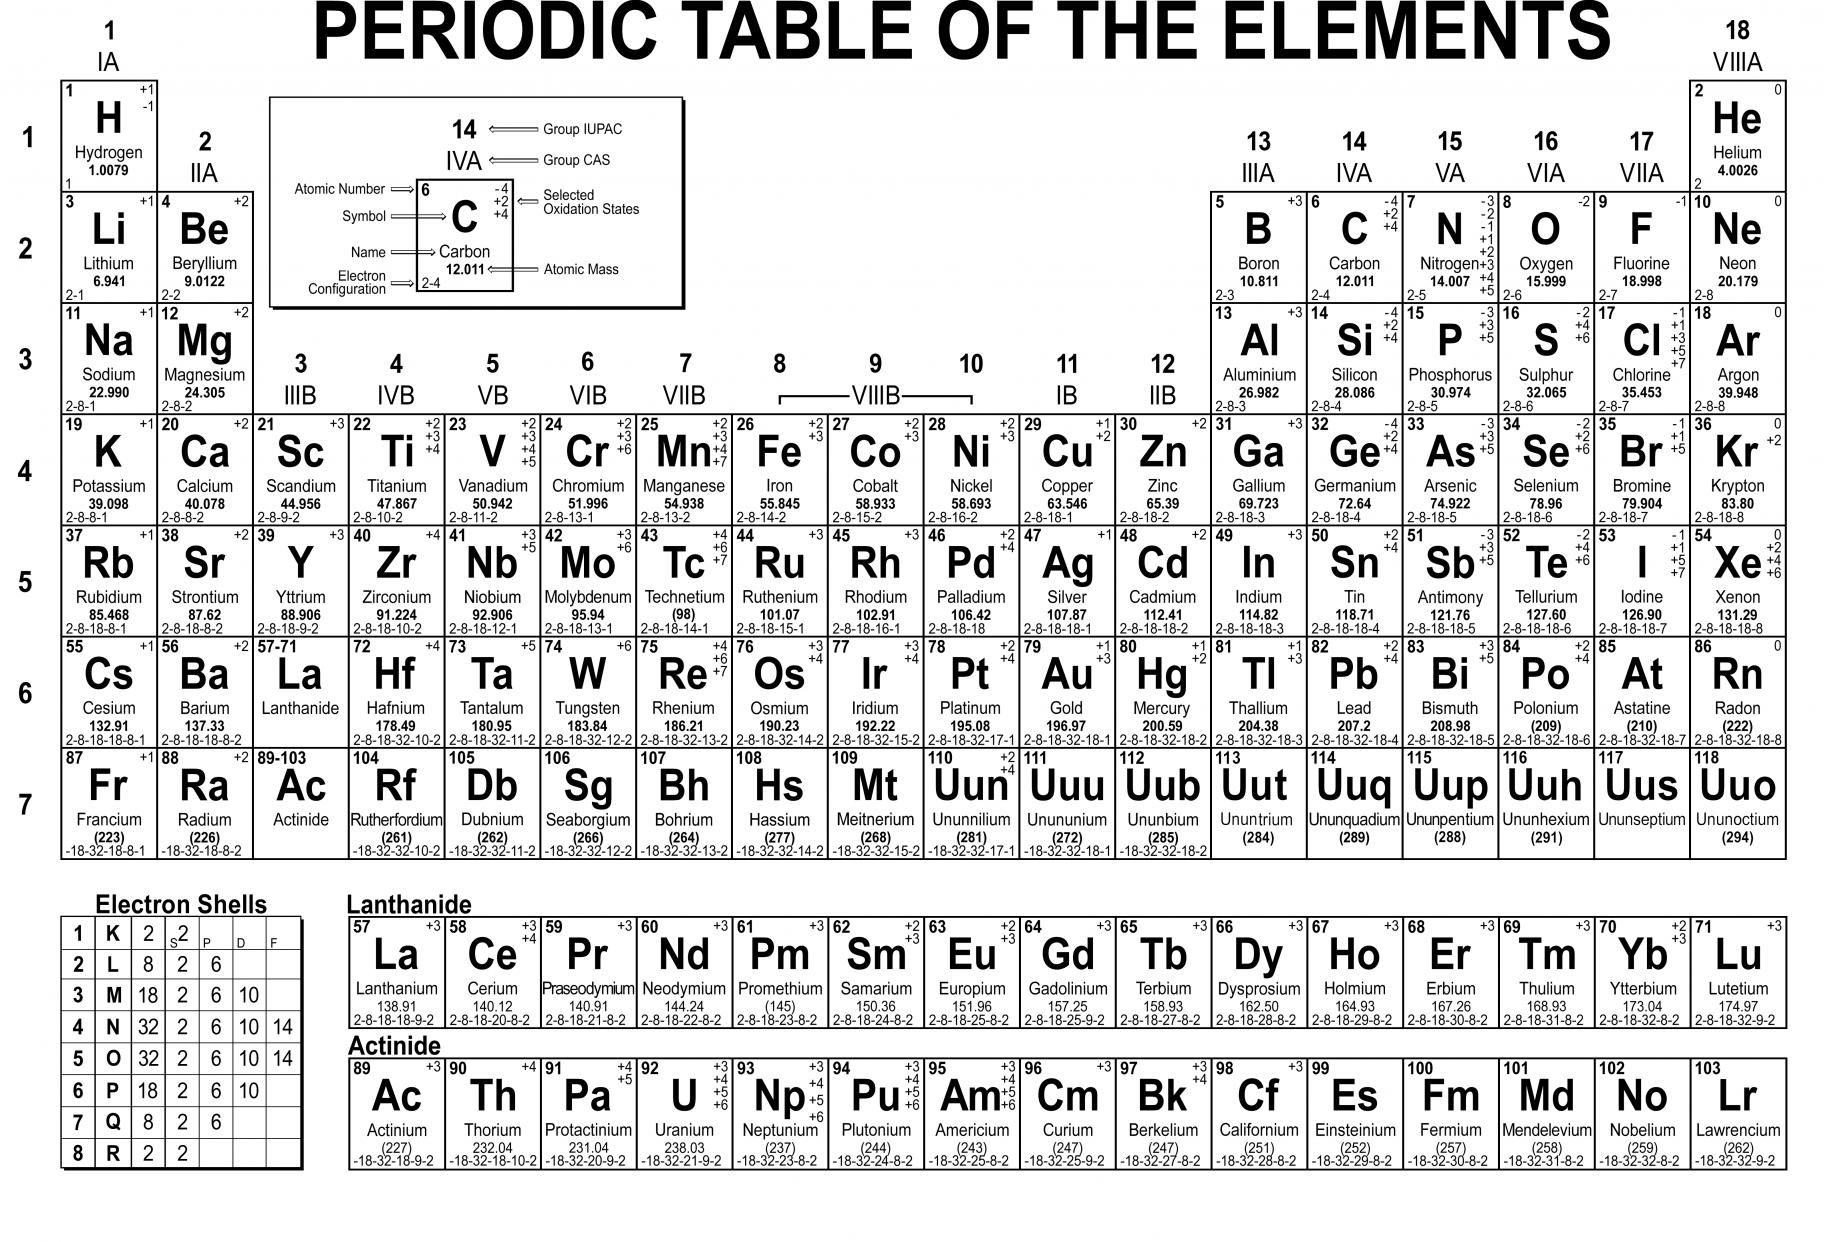 Chemistry periodic table reference table breaking bad chemistry periodic table reference table gamestrikefo Choice Image